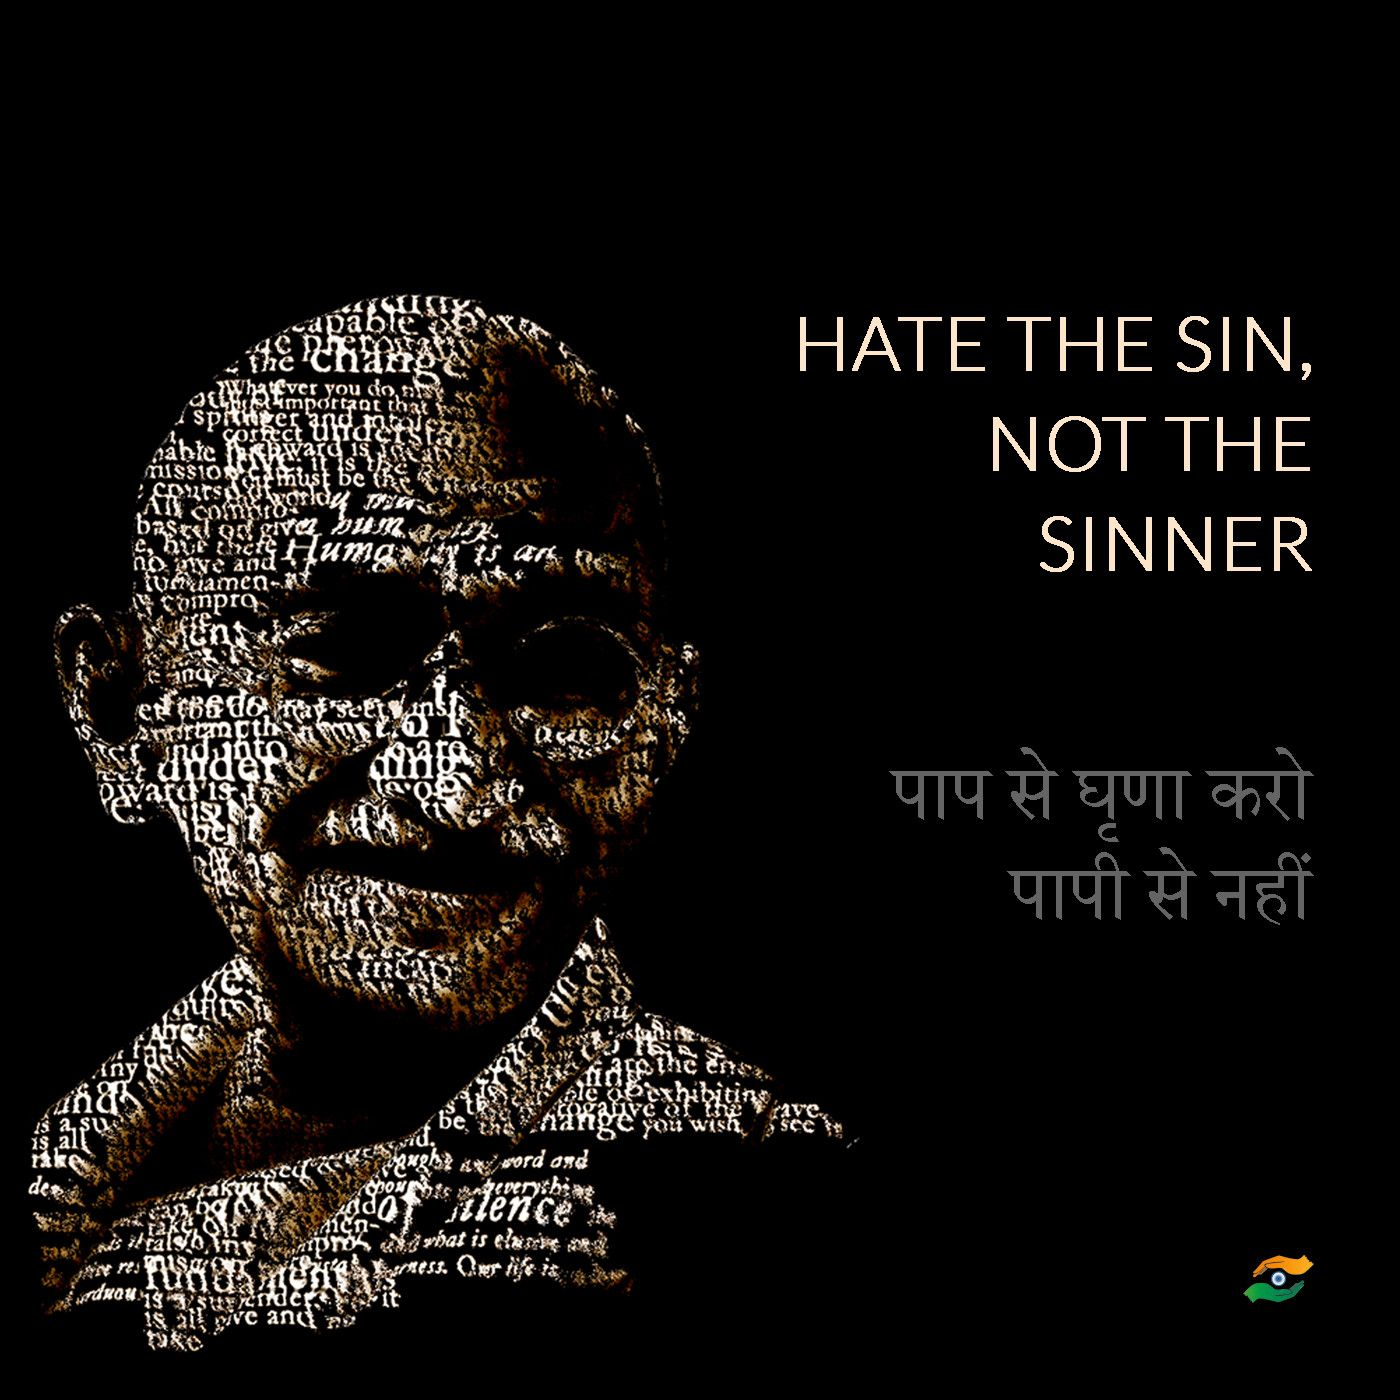 Wise Quotes Mahatma Gandhi Quotes In Hindi  Hate The Sin Not The Sinner